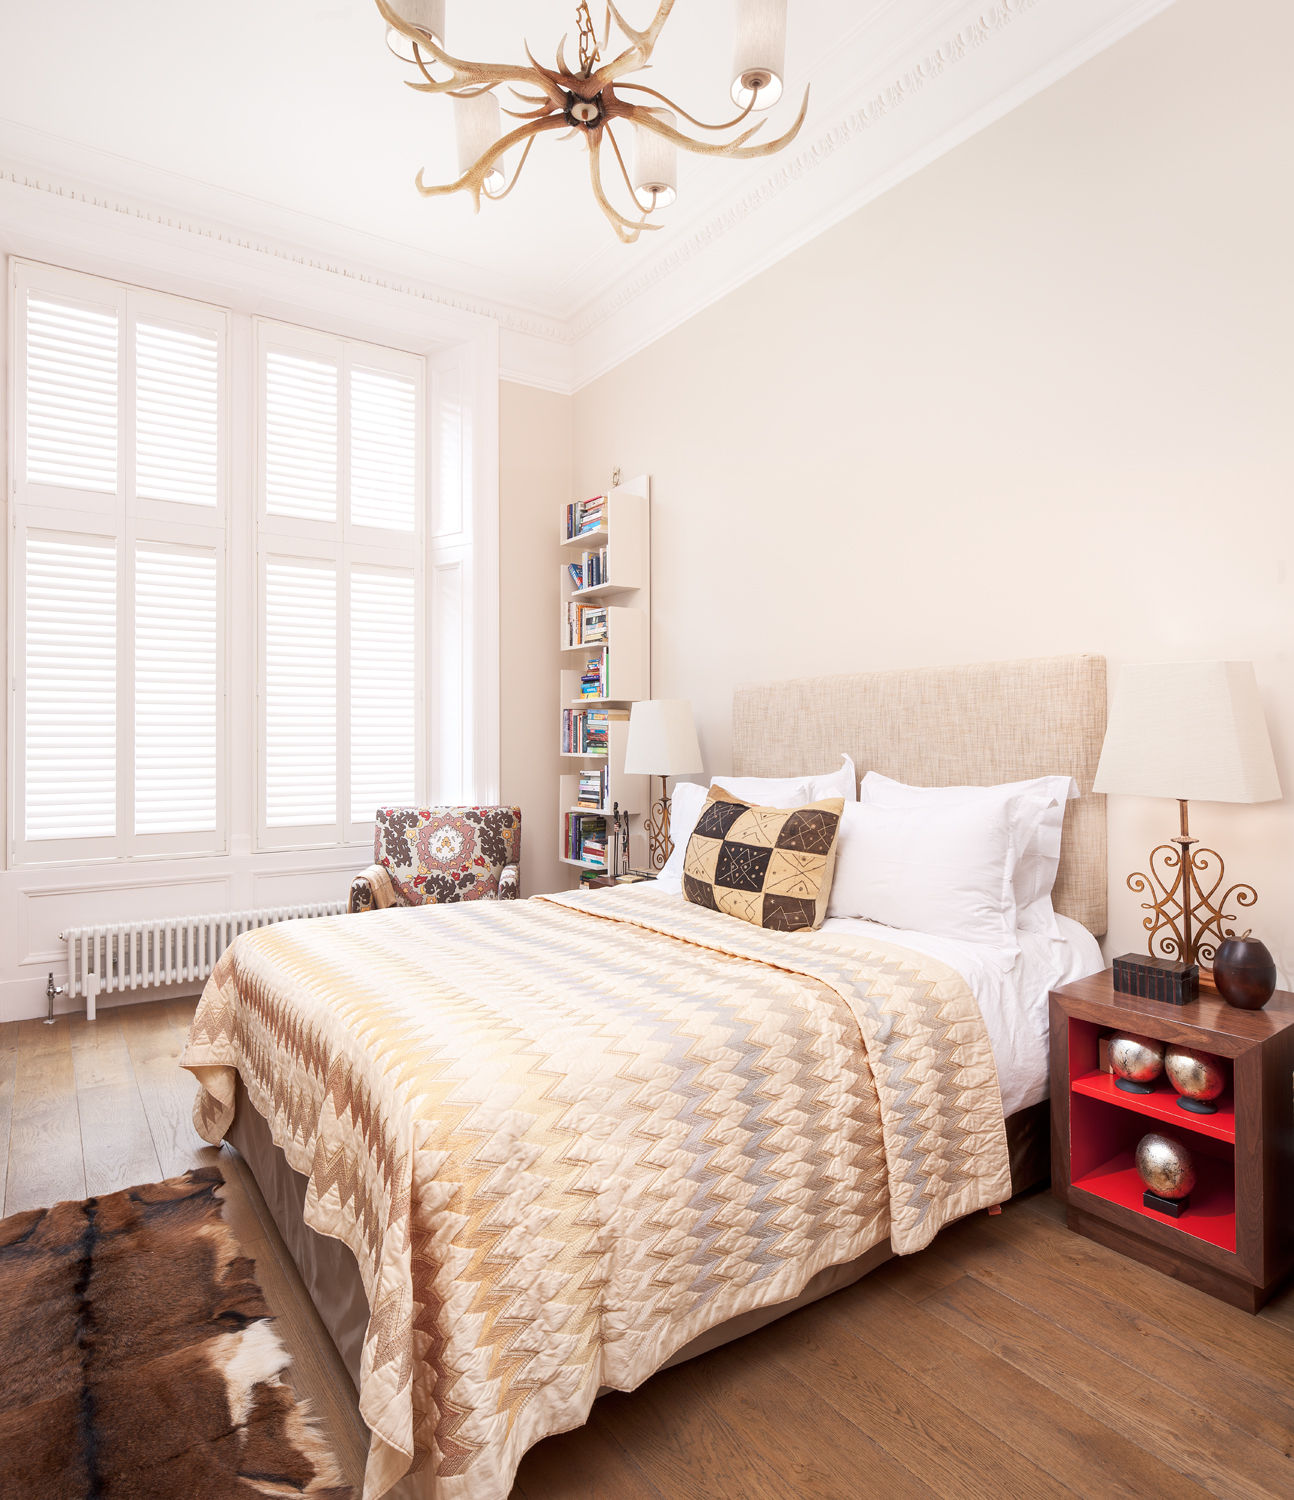 Today We're Giving You The Best Classic Home Design Ideas 7 classic home design Today We're Giving You The Best Classic Home Design Ideas Today Were Giving You The Best Classic Home Design Ideas 8